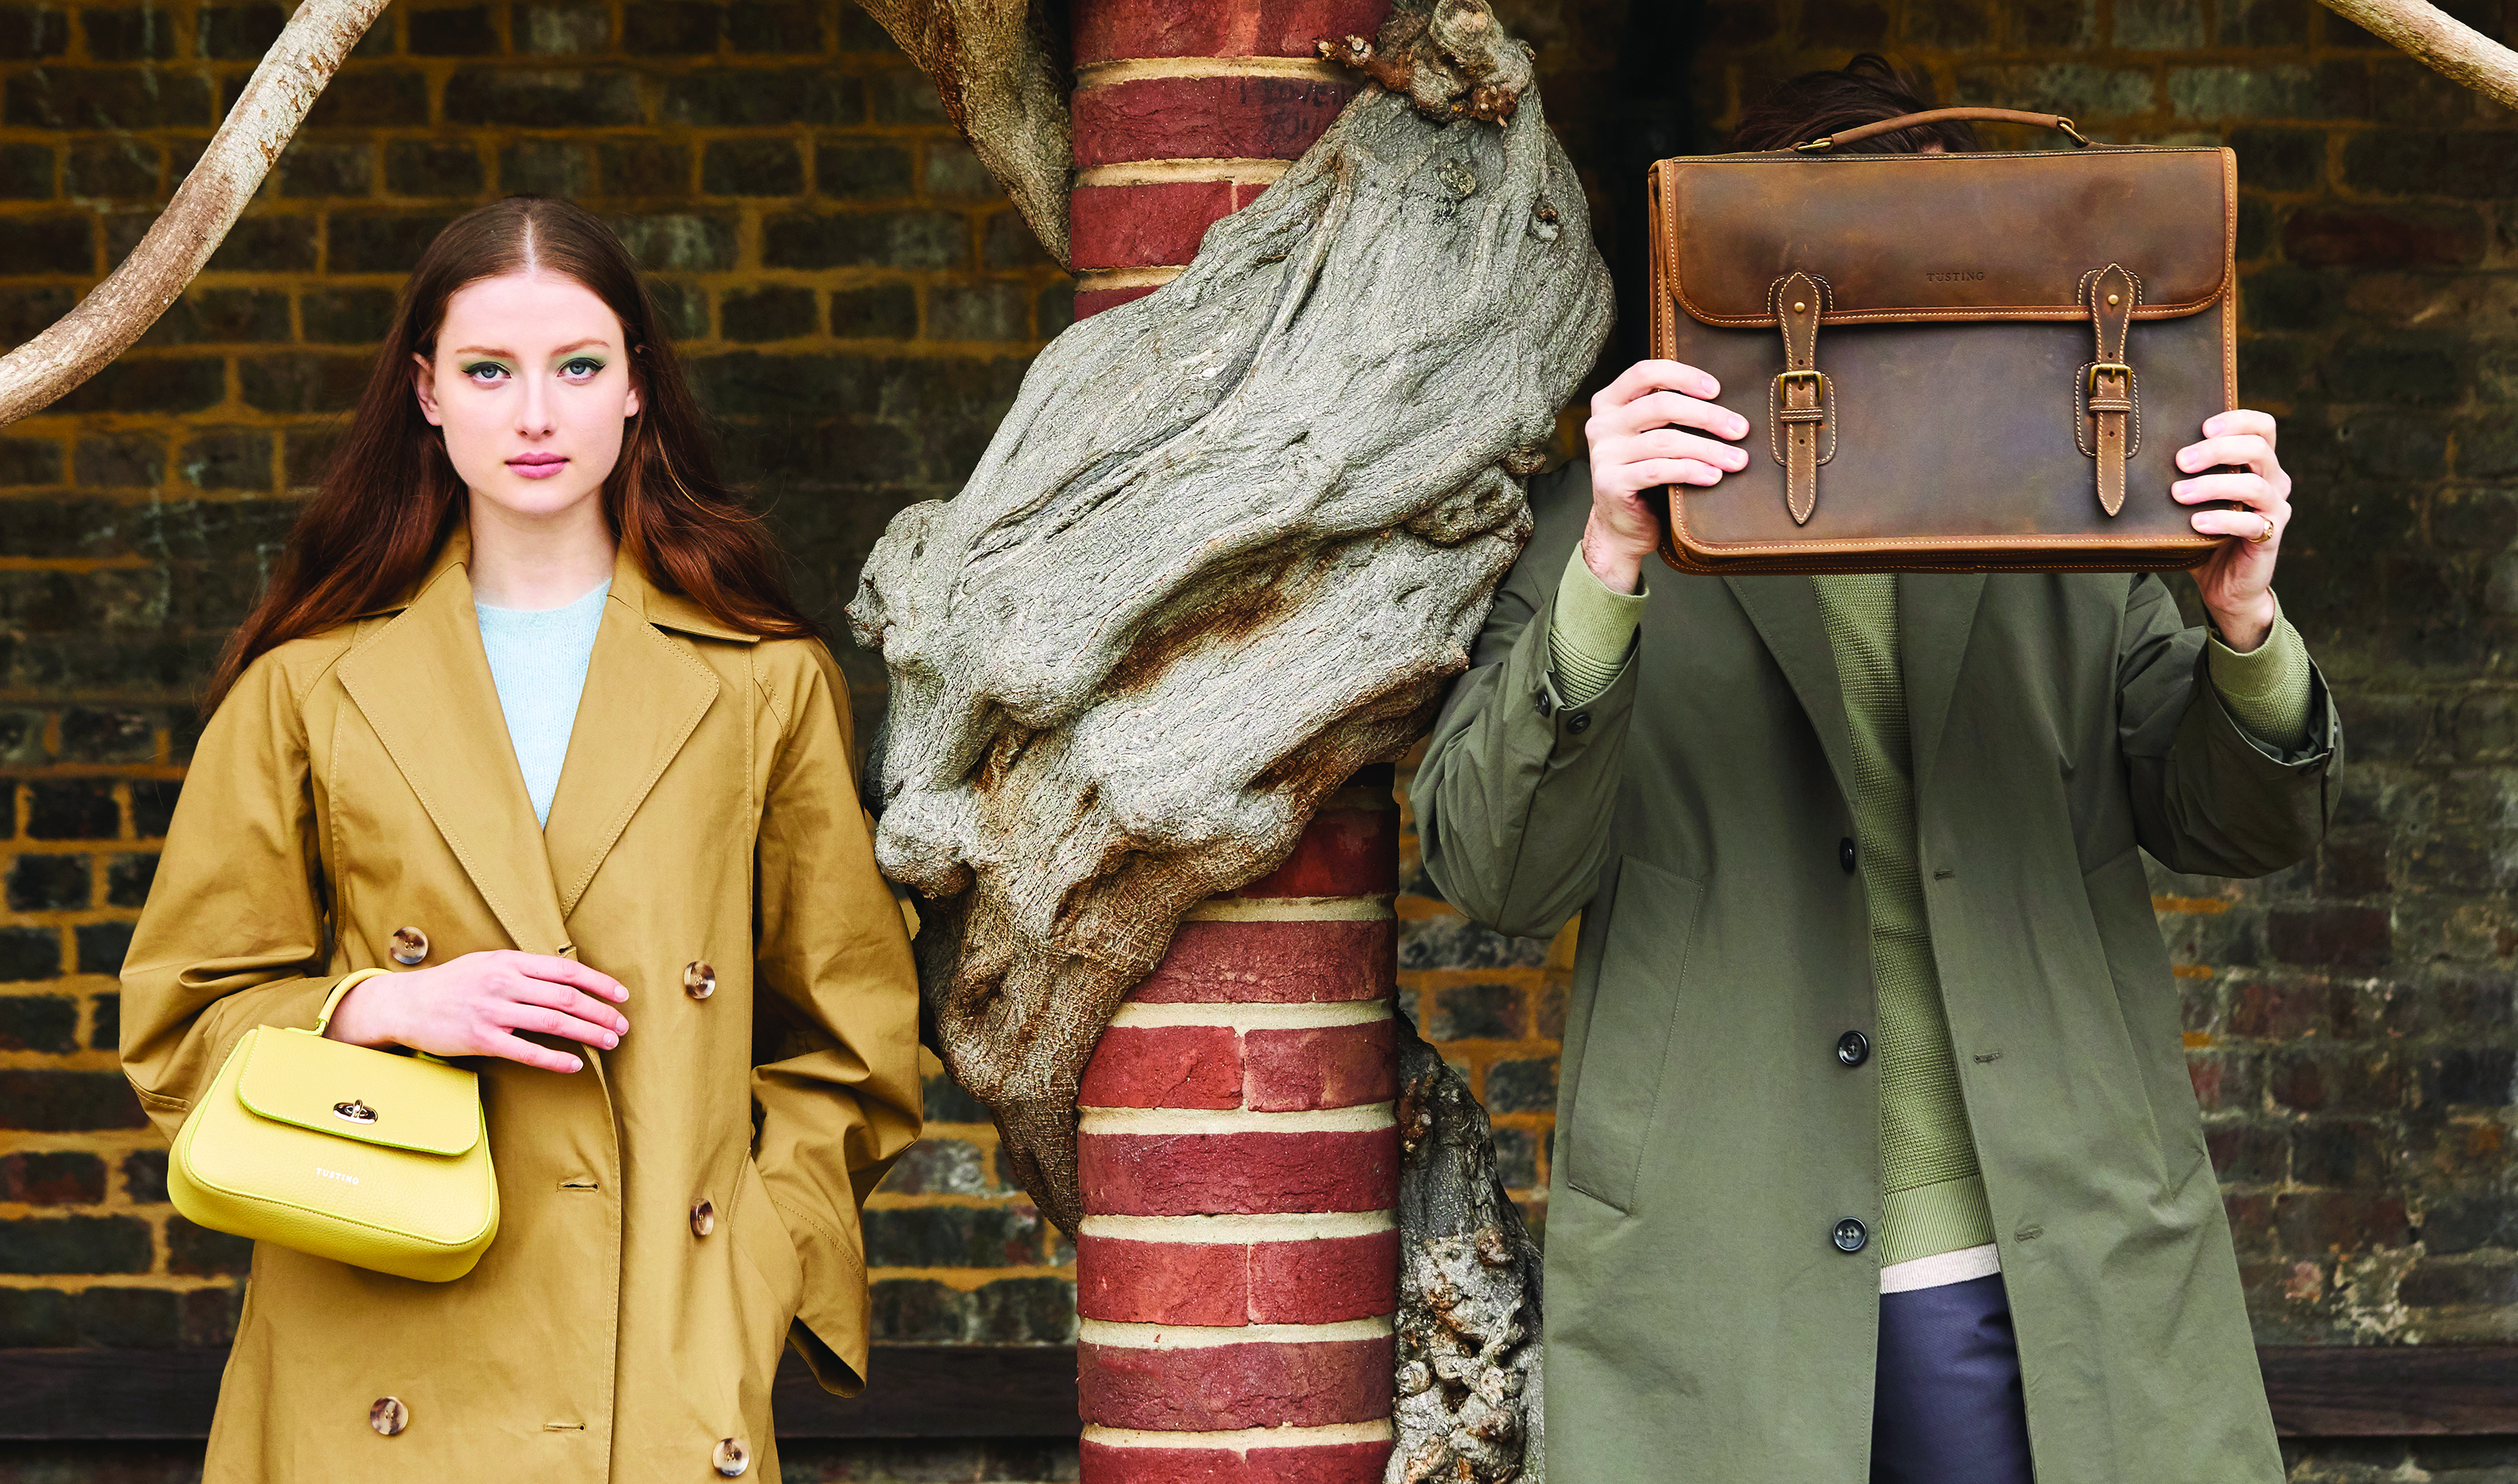 Tusting leather goods is owned by Authentic Bespoke.